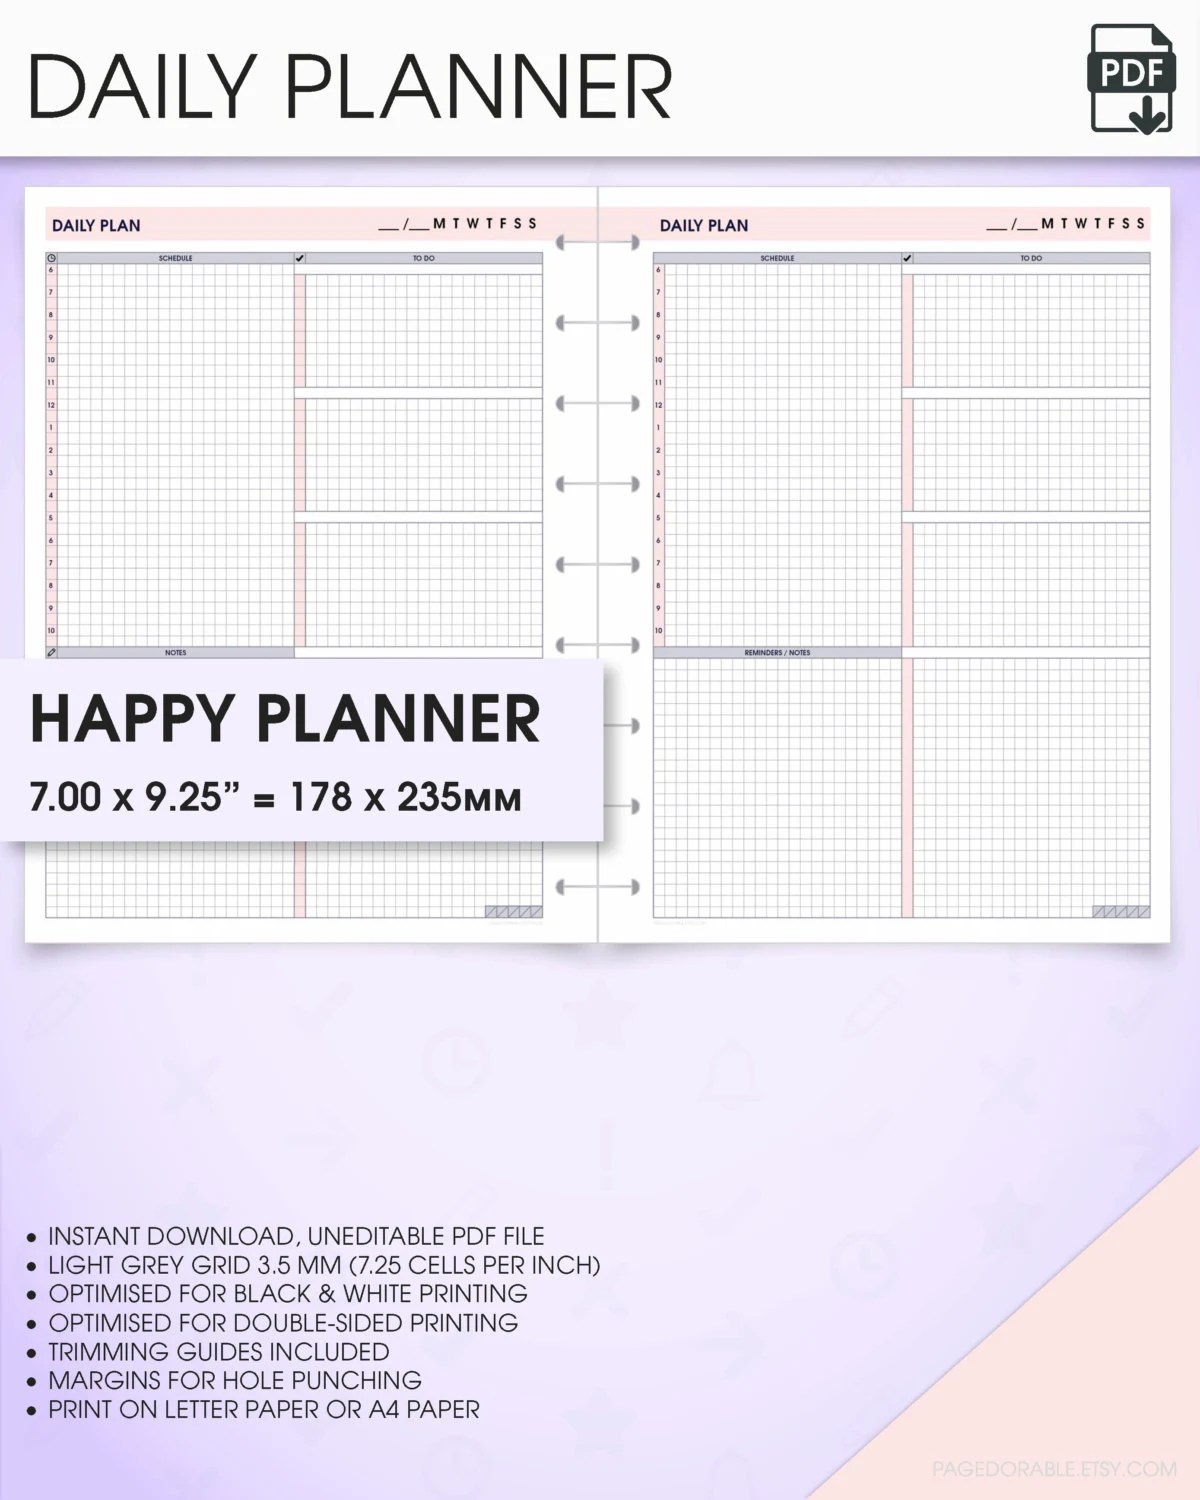 printable weekly planner for college students - Towerssconstruction